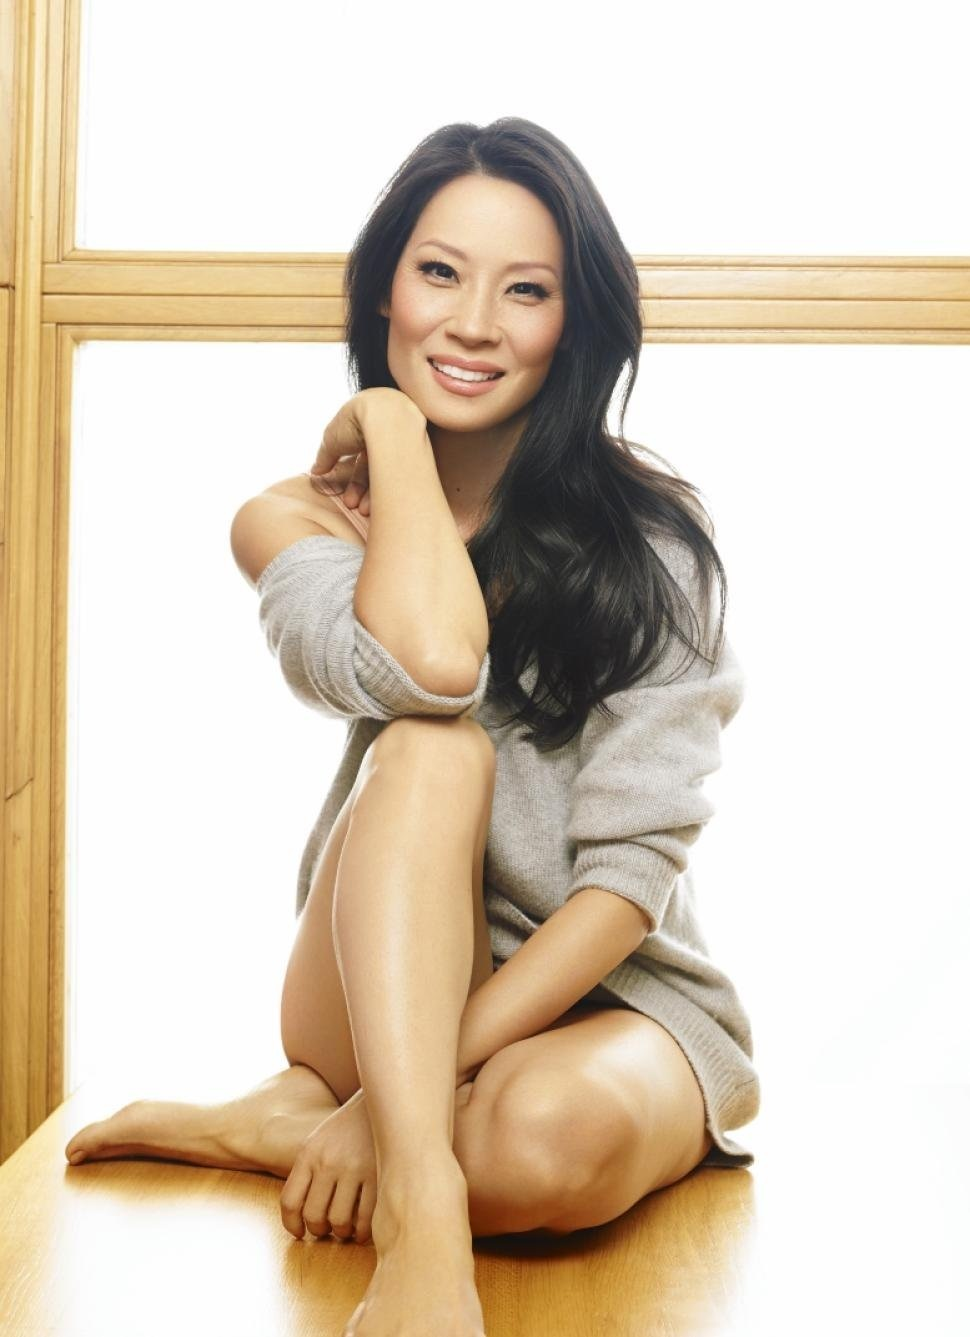 Lucy Liu Images, Videos and Sexy Pics Hottie Profile